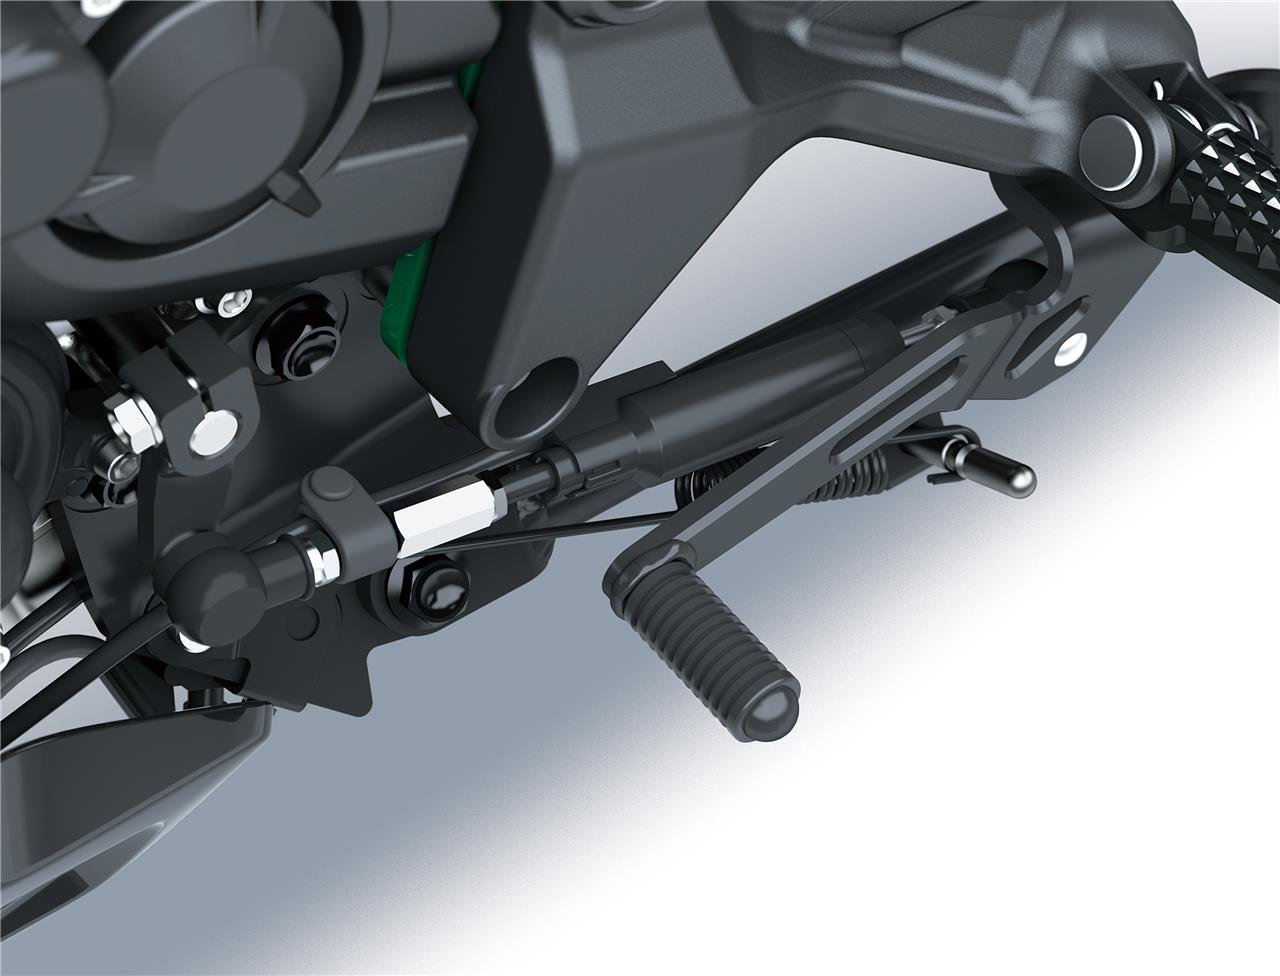 New 2020 Kawasaki Z H2 Supercharged Naked  Roadster Z1000 For Sale (picture 6 of 6)